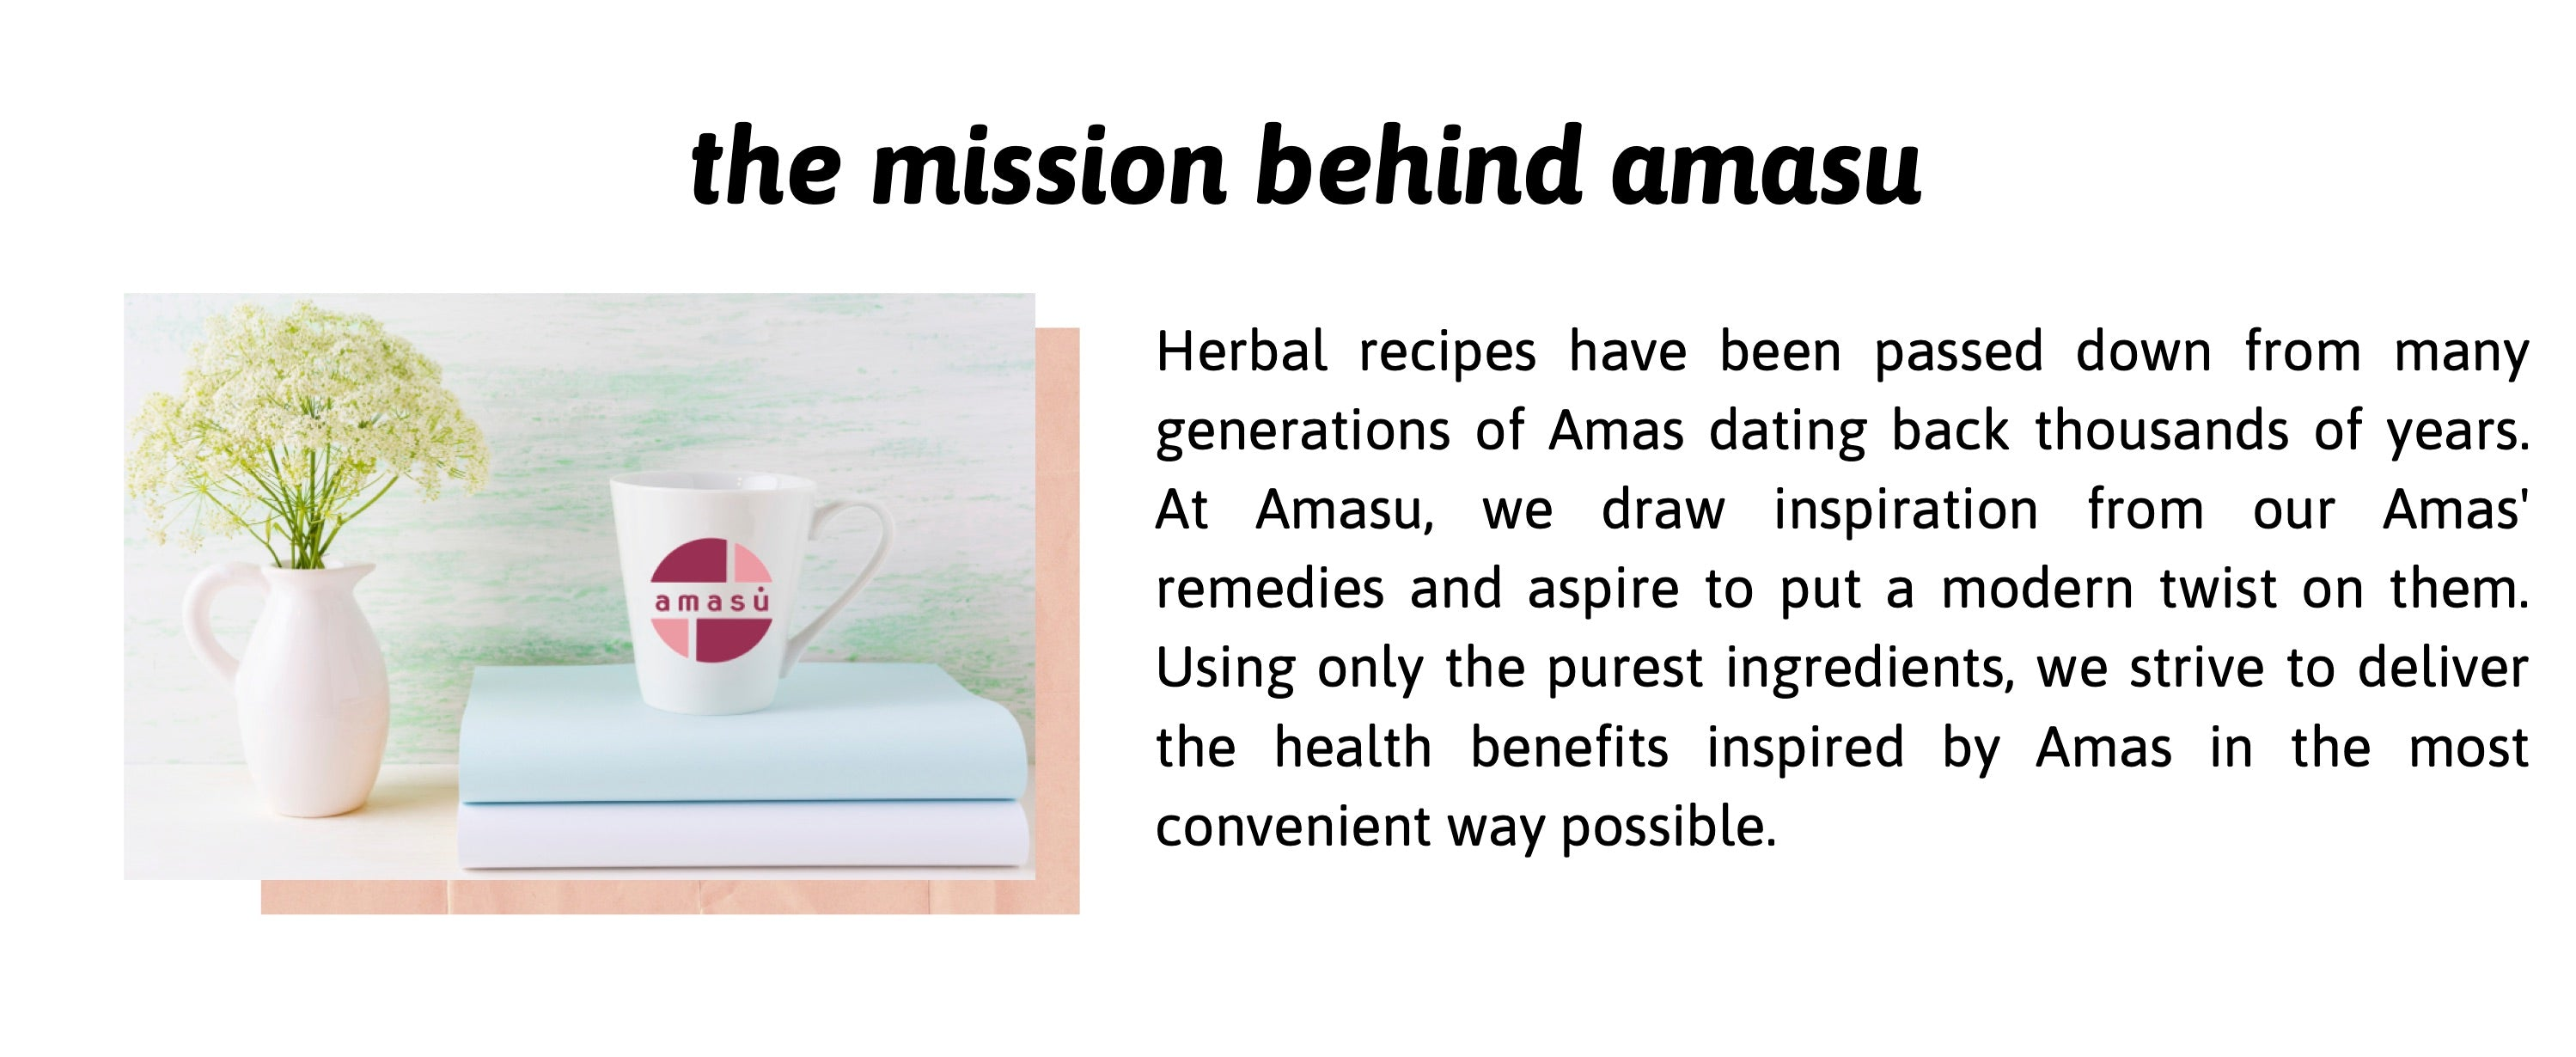 Herbal recipes have been passed down from many generations of Amas(mothers) dating back thousands of years. At Amasu, we draw inspiration from our Amas' remedies and aspire to put a modern twist on them. Using only the purest ingredients, we strive to deliver the health benefits inspired by Ama in the most convenient way possible.